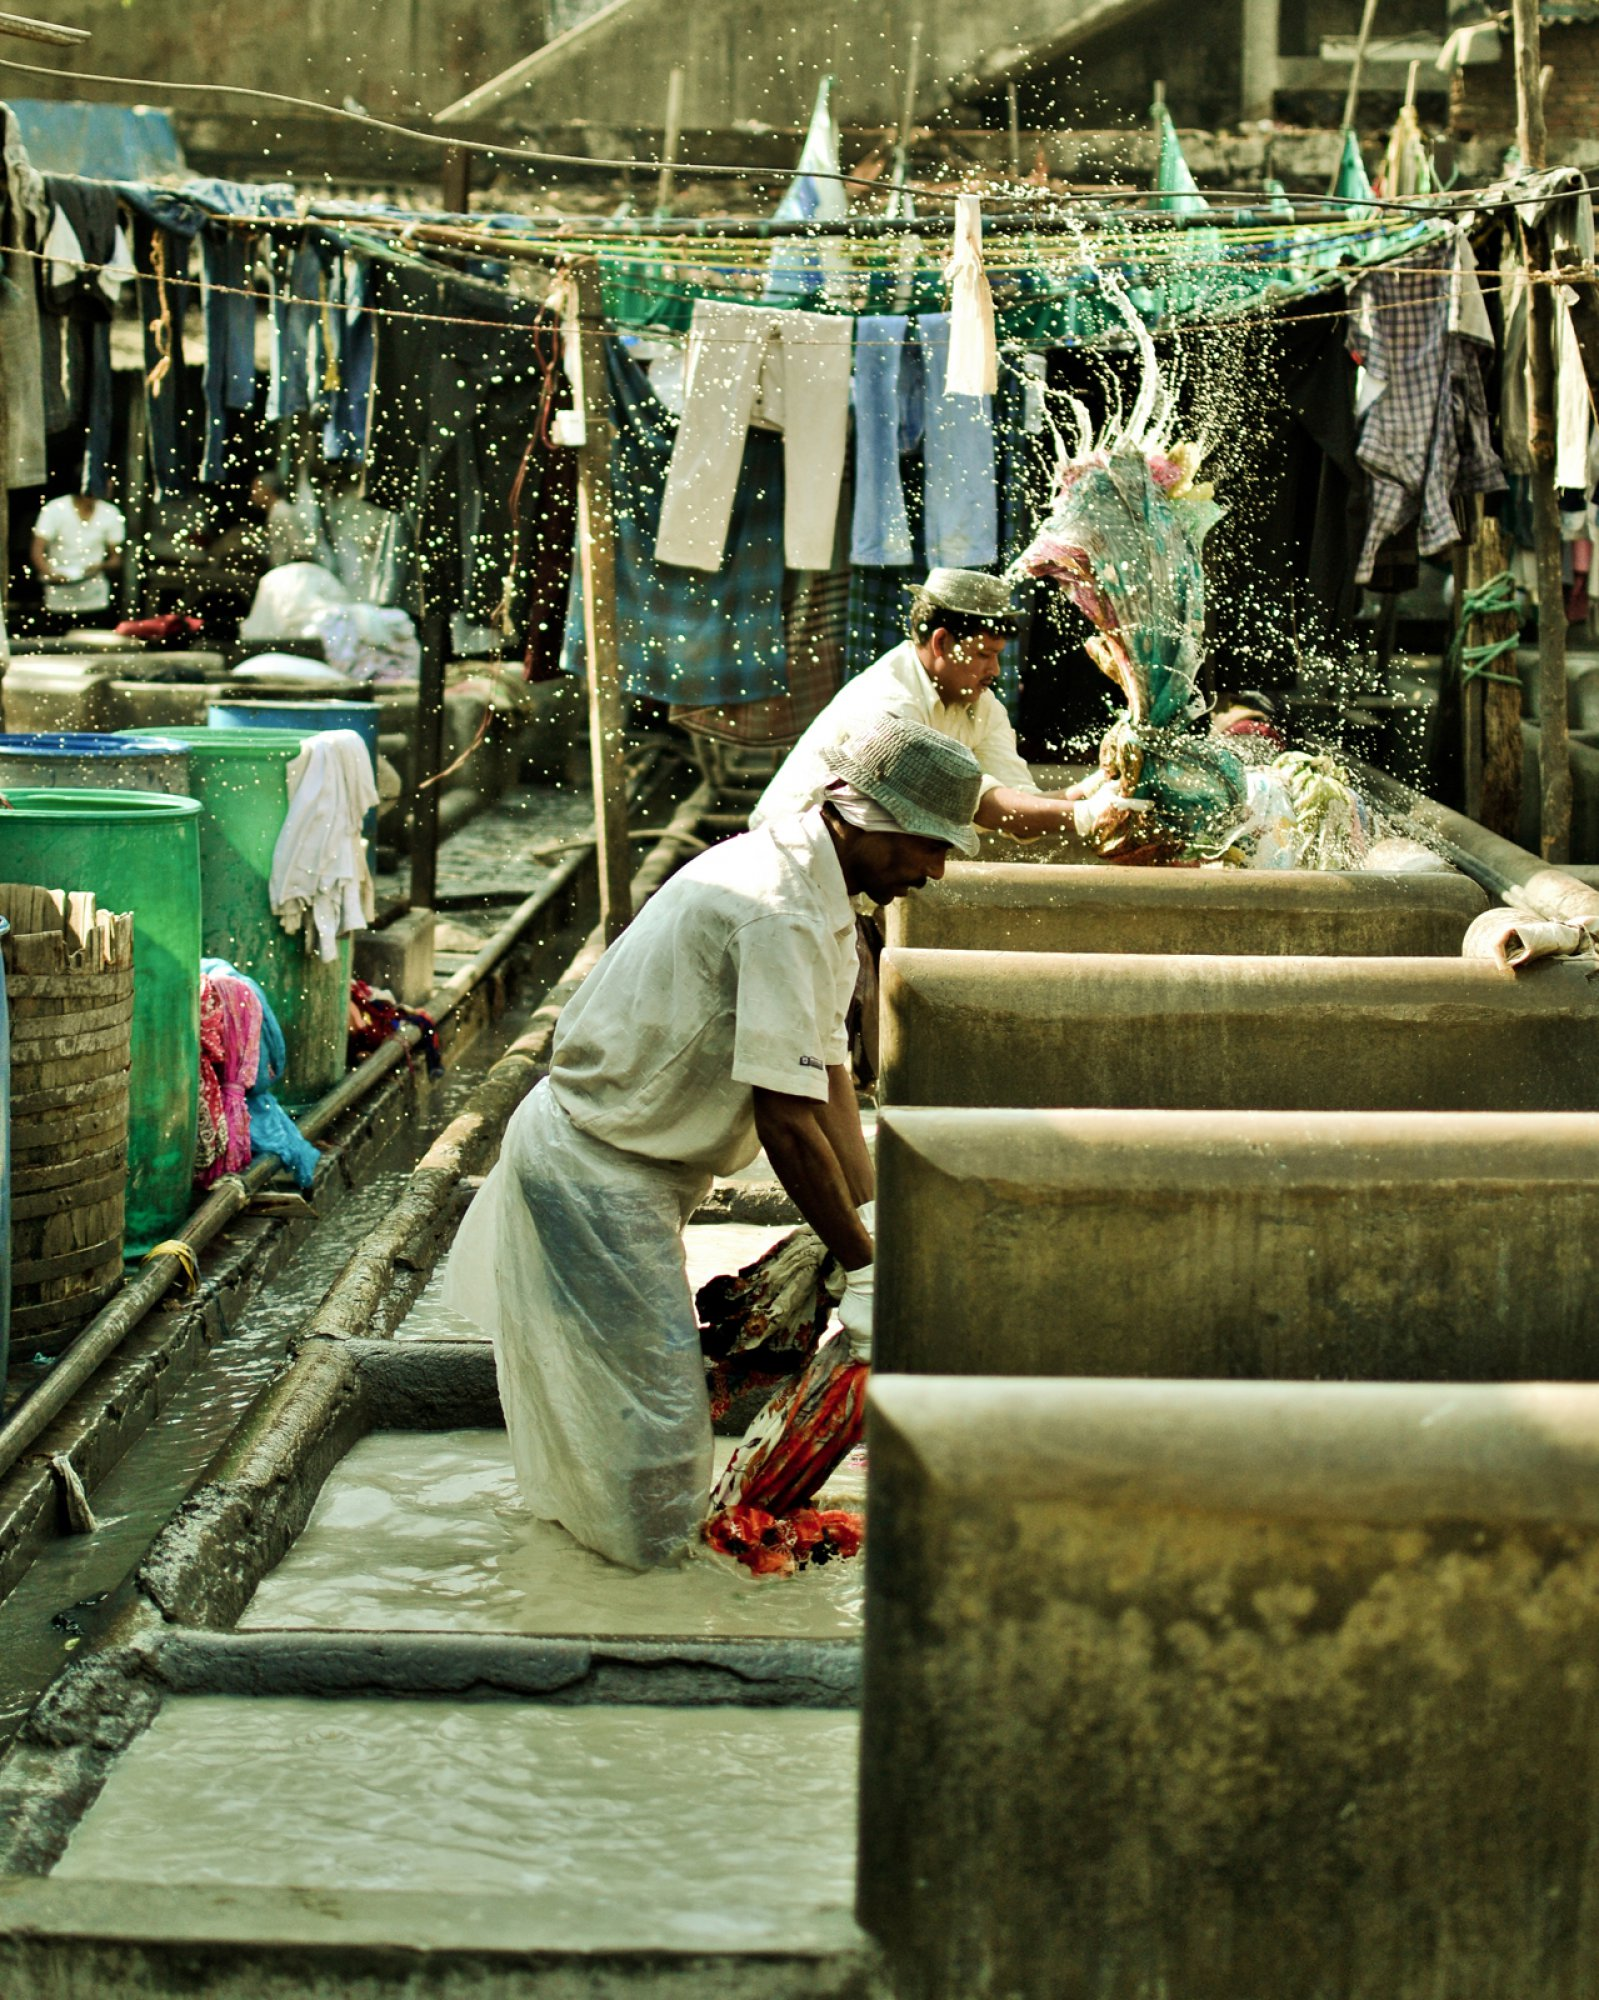 https://bubo.sk/uploads/galleries/4917/bombaj-dhobi-ghat-mumbai.jpg